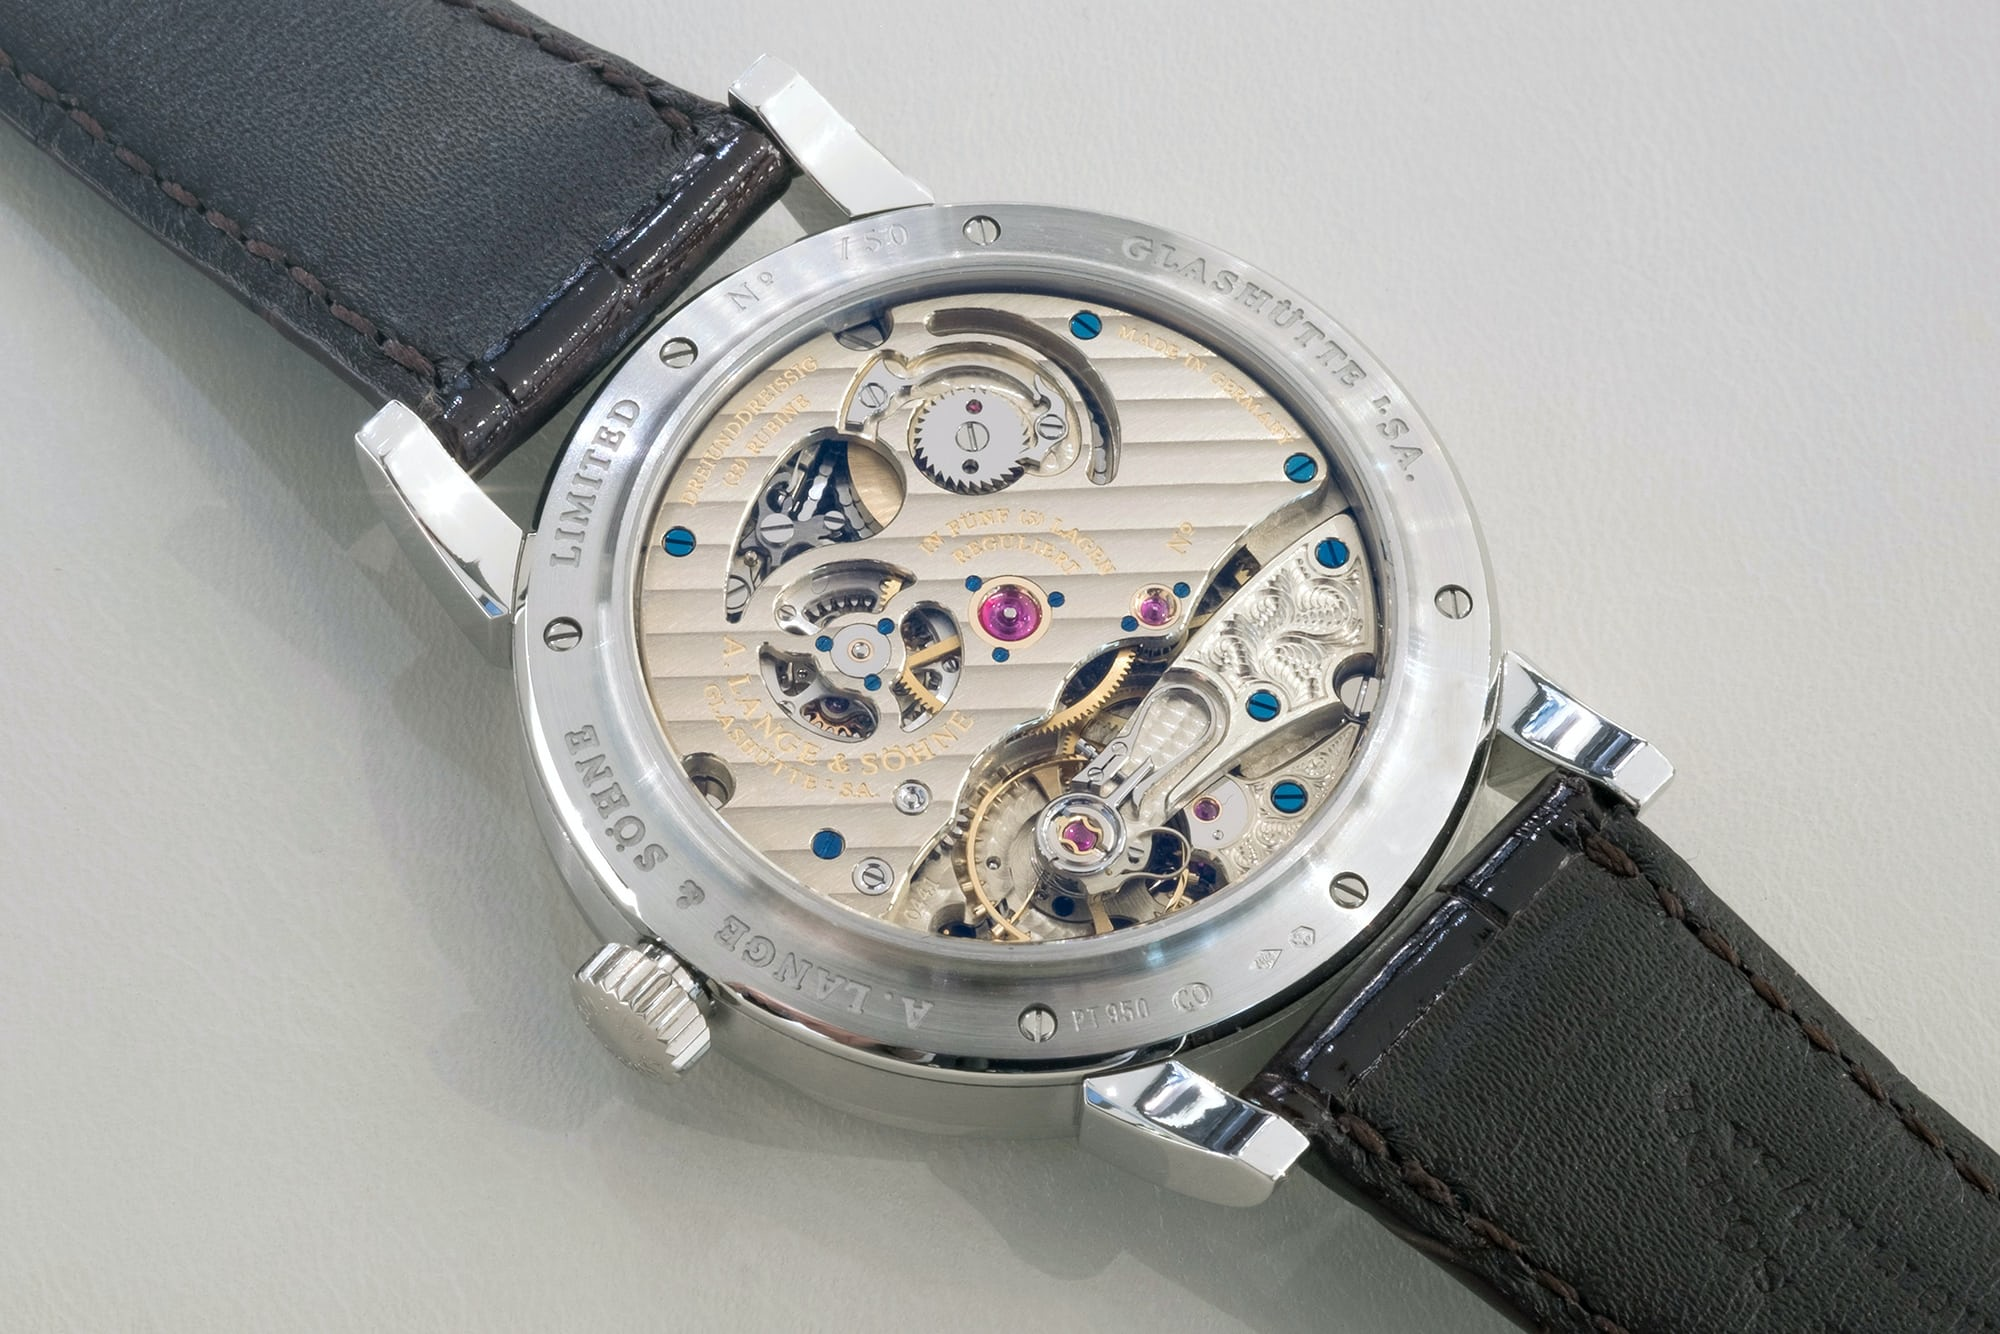 Just Because: All Five A. Lange & Söhne 'Pour le Mérite' Watches In The Same Place, At The Same Time Just Because: All Five A. Lange & Söhne 'Pour le Mérite' Watches In The Same Place, At The Same Time plm 05